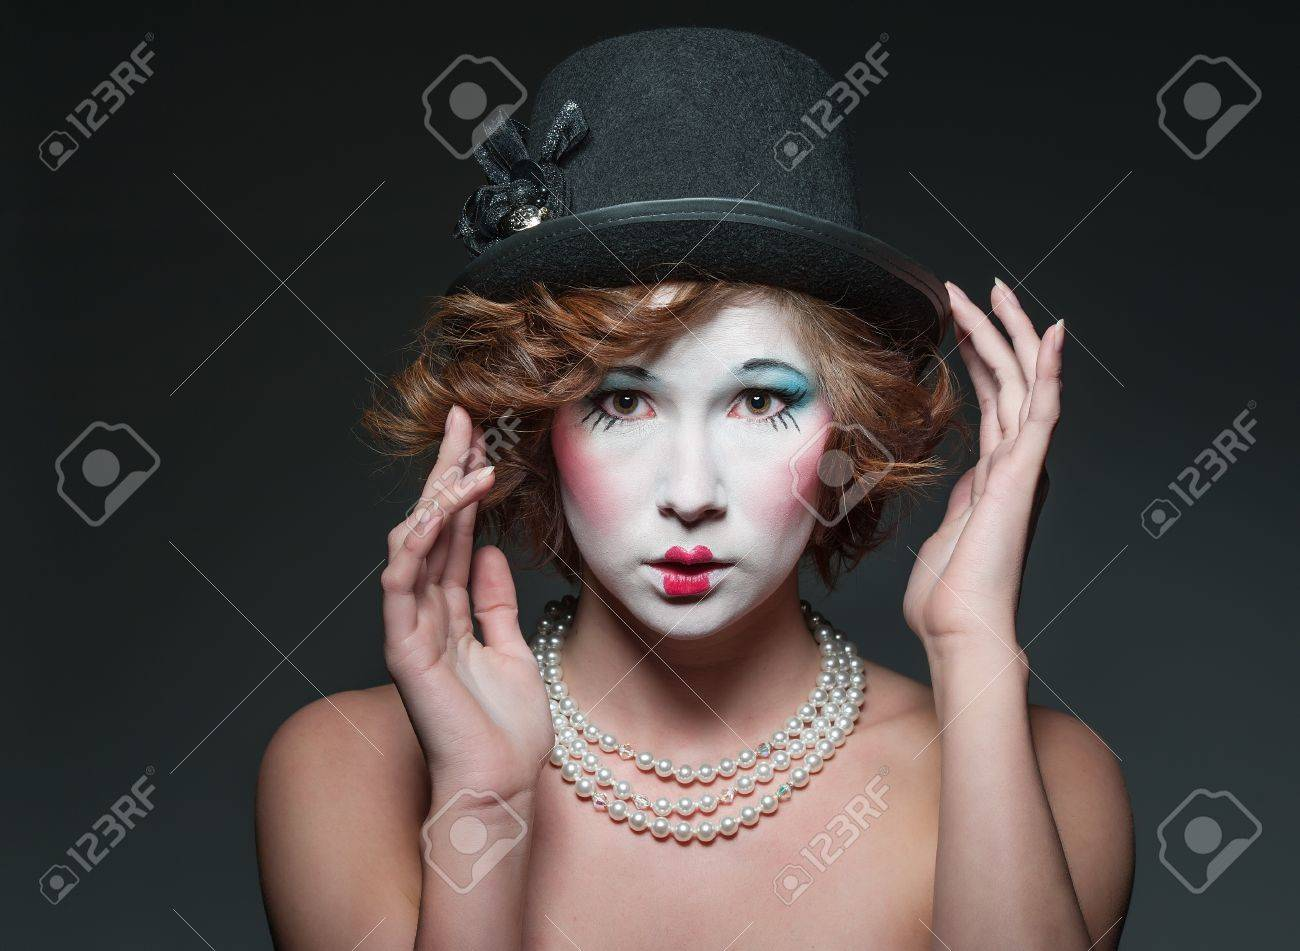 a girl dressed up as an old vintage porcelain doll Stock Photo - 13068598